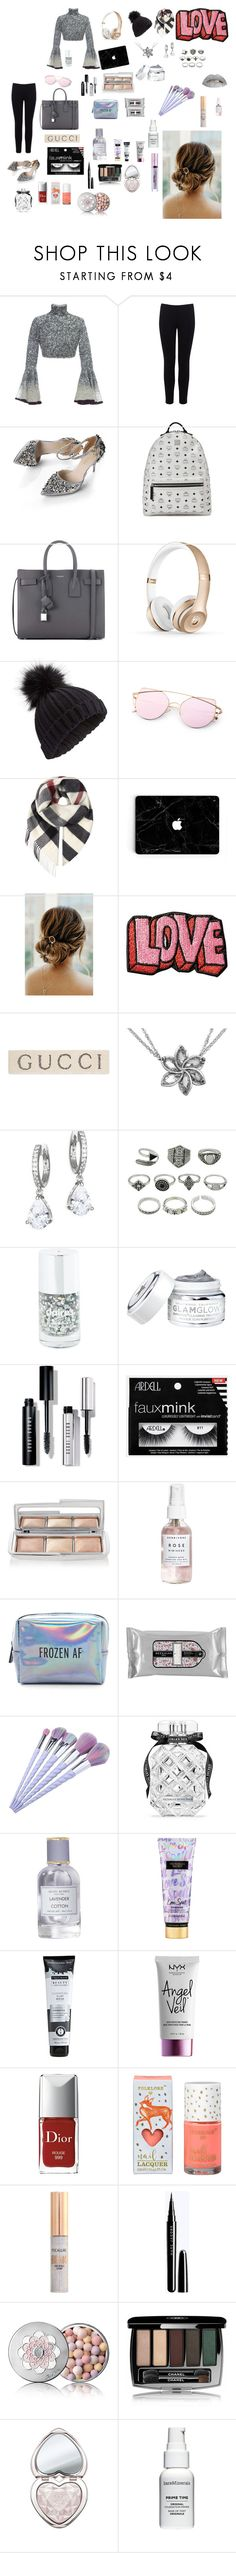 """Bez naslova #11"" by hidi-i ❤ liked on Polyvore featuring Hussein Bazaza, Warehouse, MCM, Yves Saint Laurent, Miss Selfridge, Burberry, Stoney Clover Lane, Gucci, Kate Spade and Bobbi Brown Cosmetics"